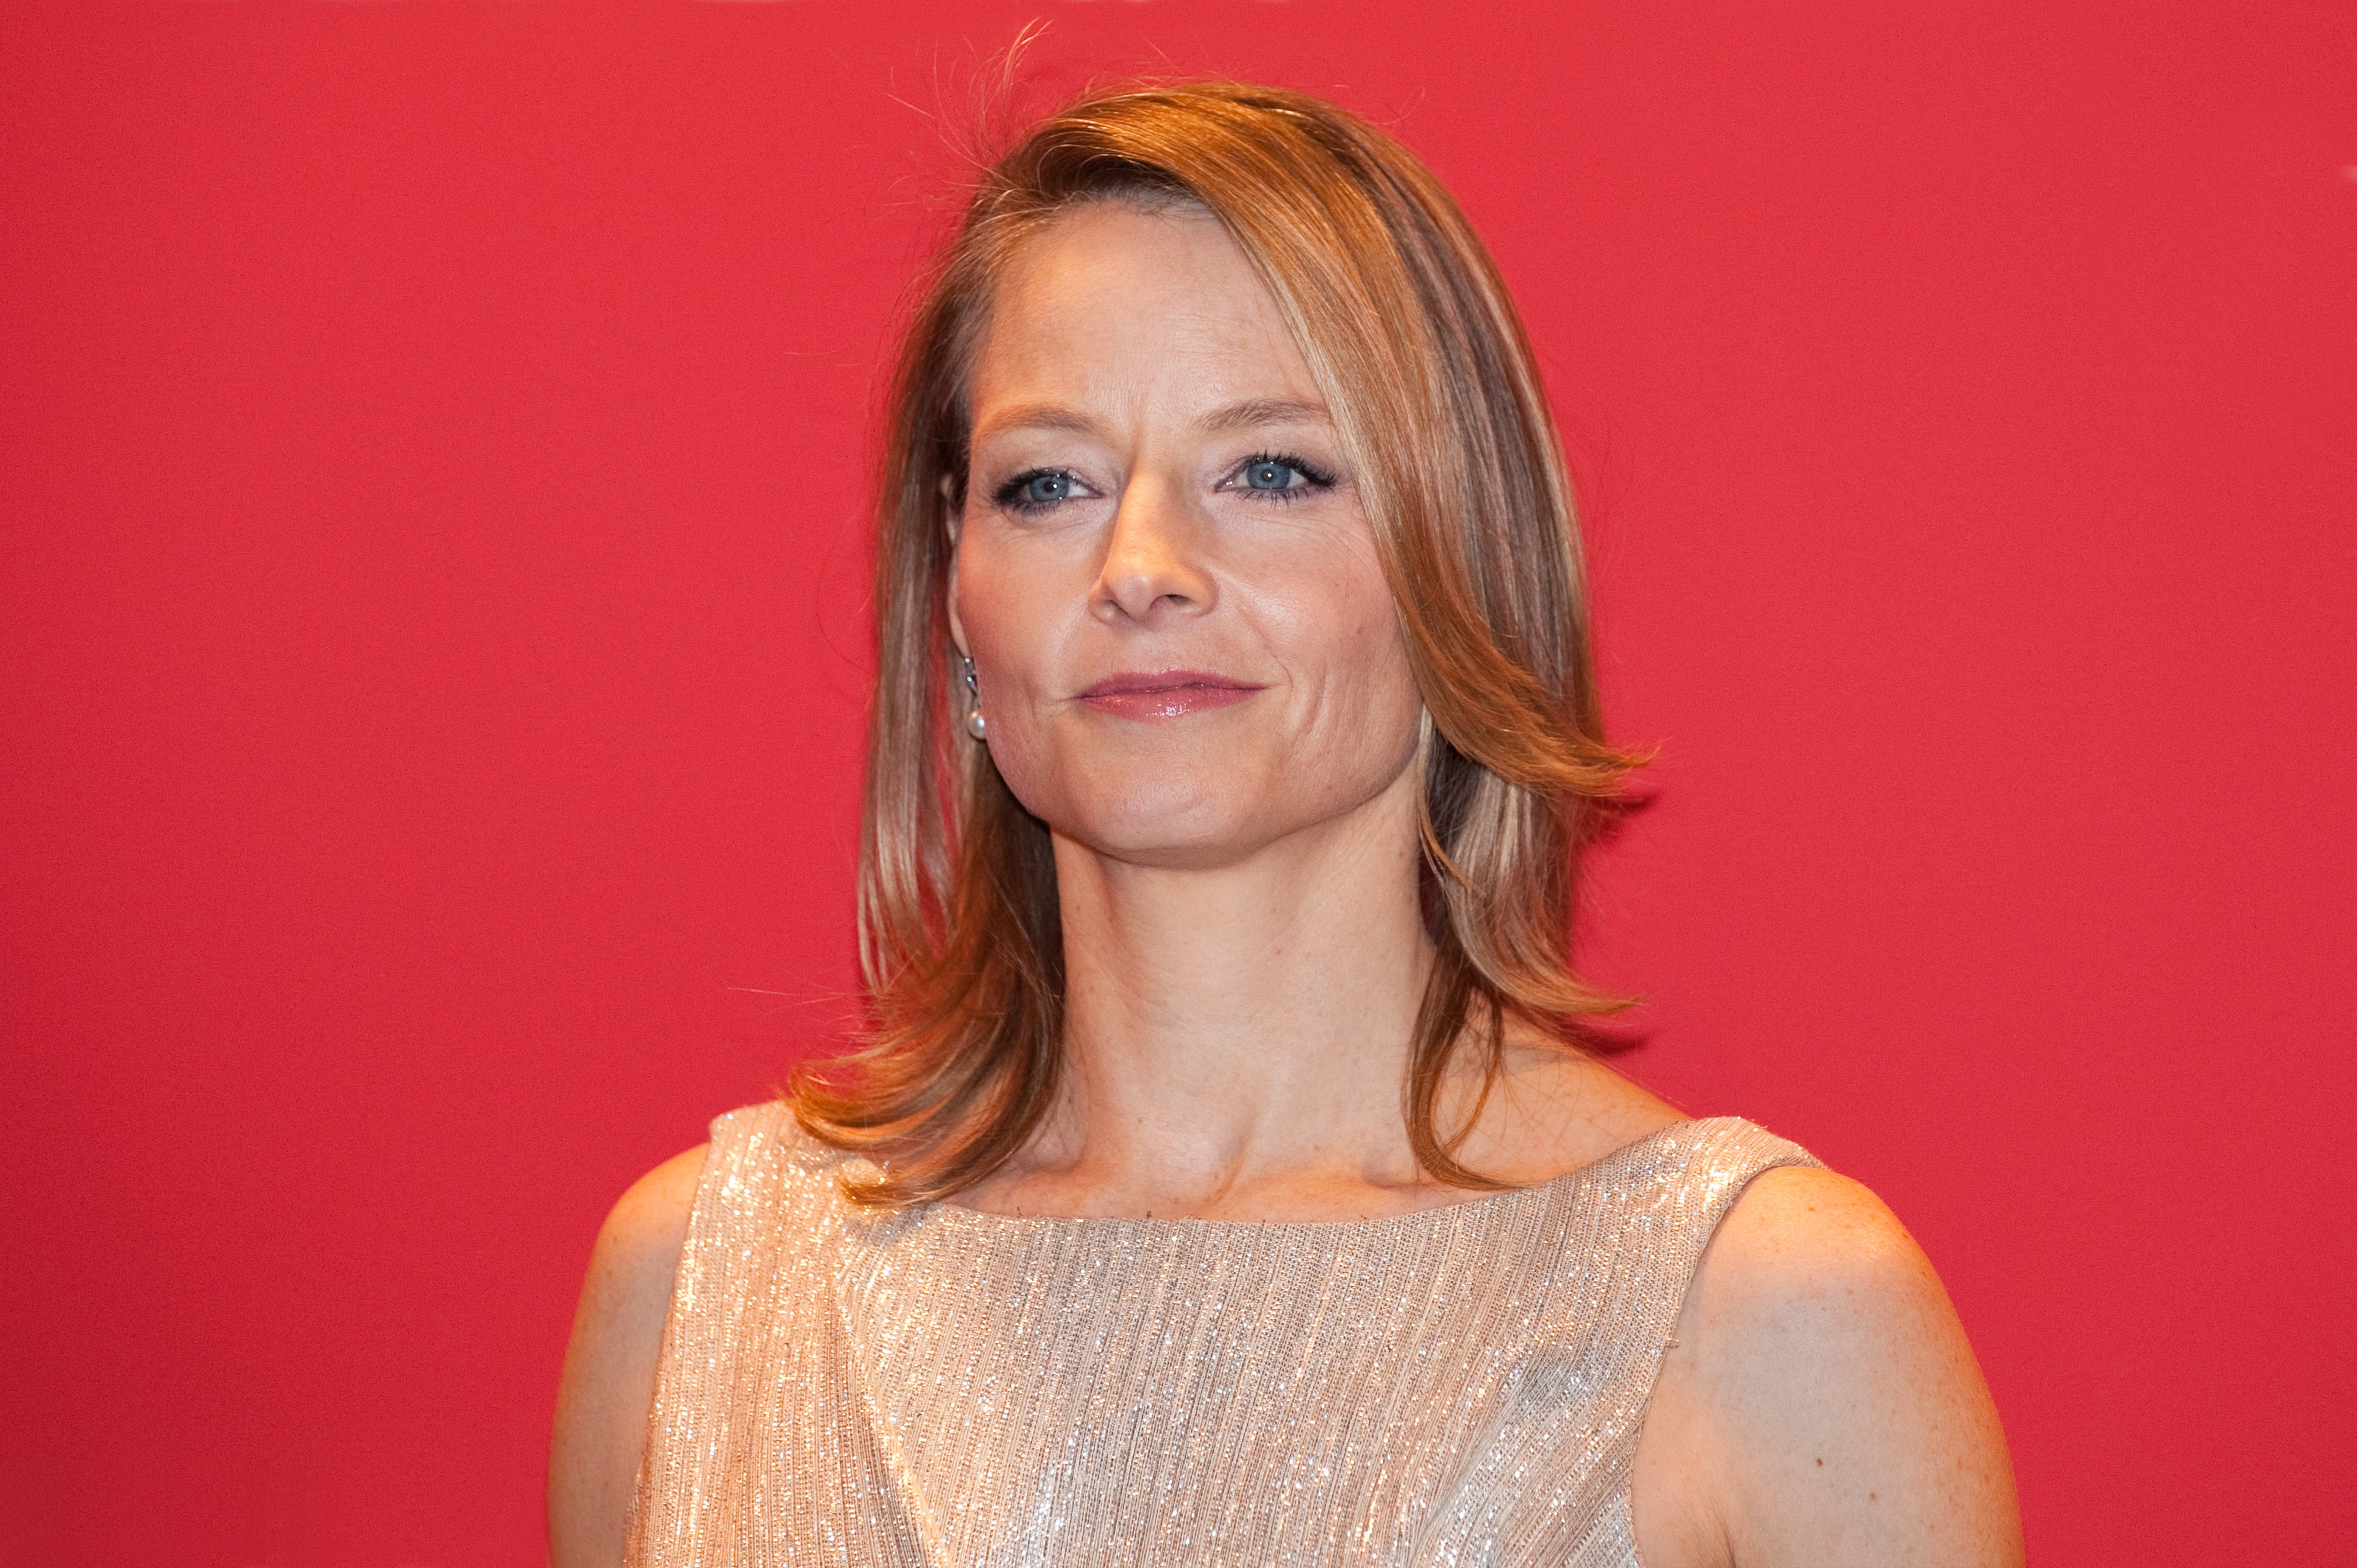 Jodie Foster attending the Cesar Awards in Paris, February, 2011.   Photo: Shutterstock.